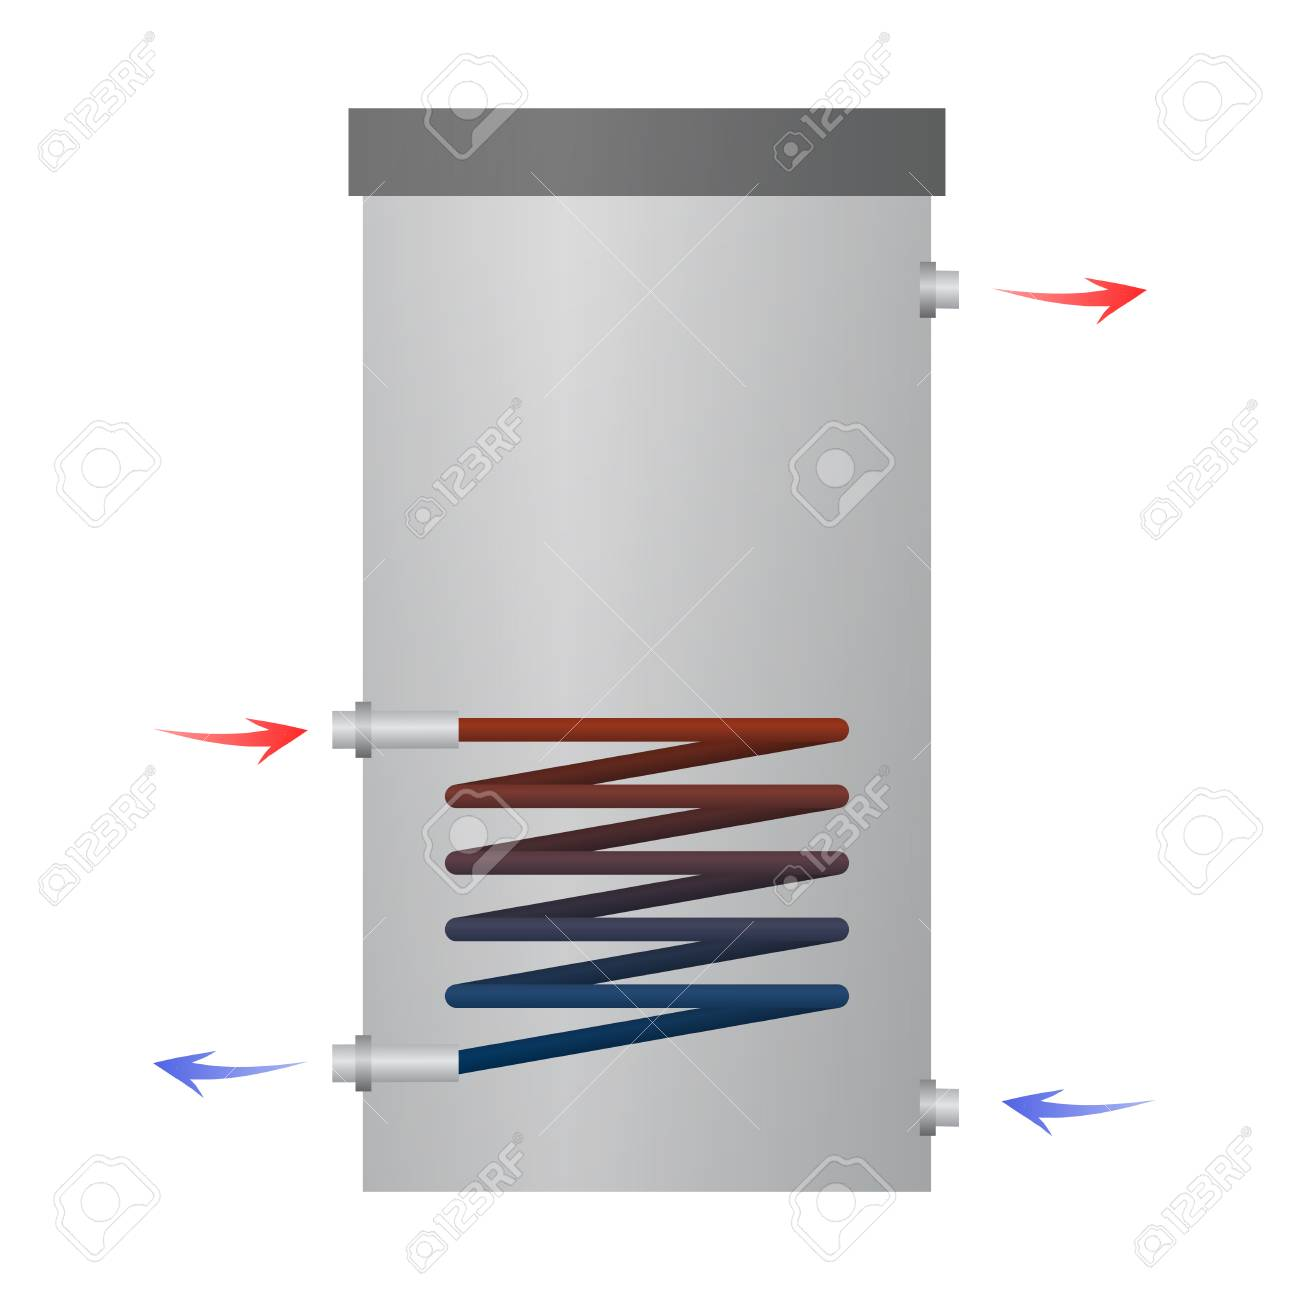 hot water heater vector illustration  internal parts  the heating circuit   the water flows